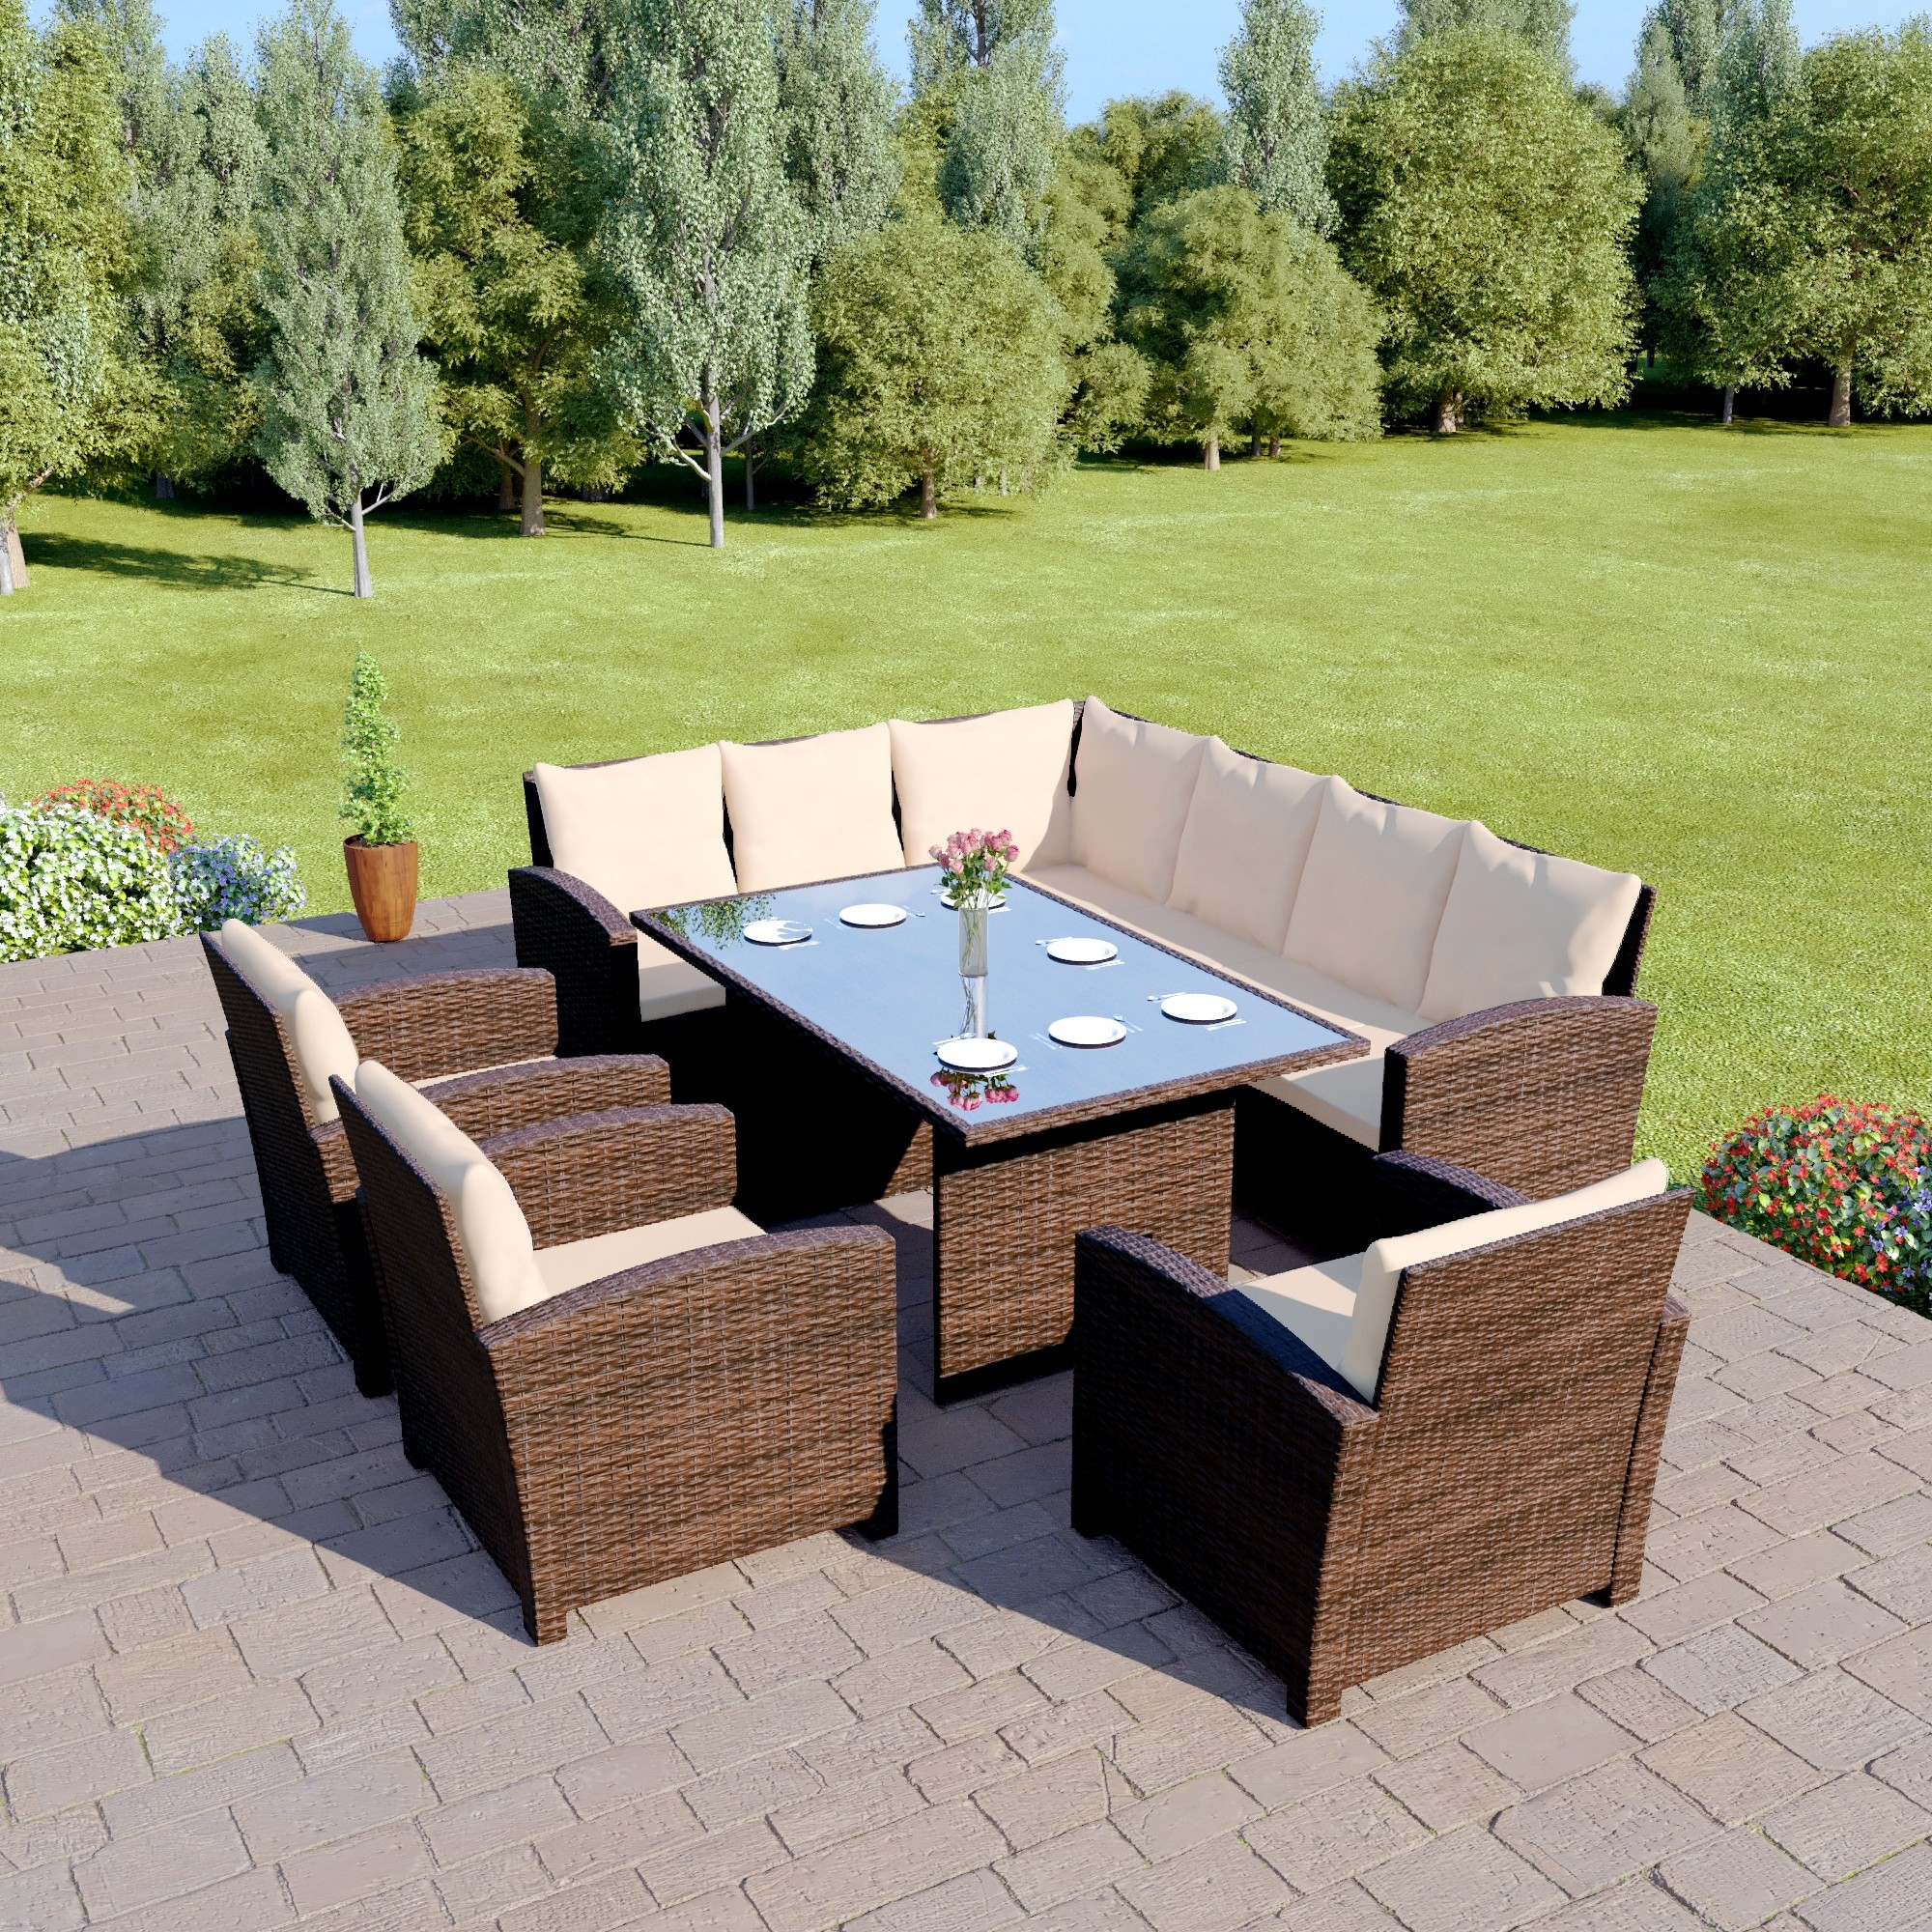 Garden Rattan Sofa Uk Bermuda 9 Seater Garden Rattan Dining Set Brown With Light Cushions